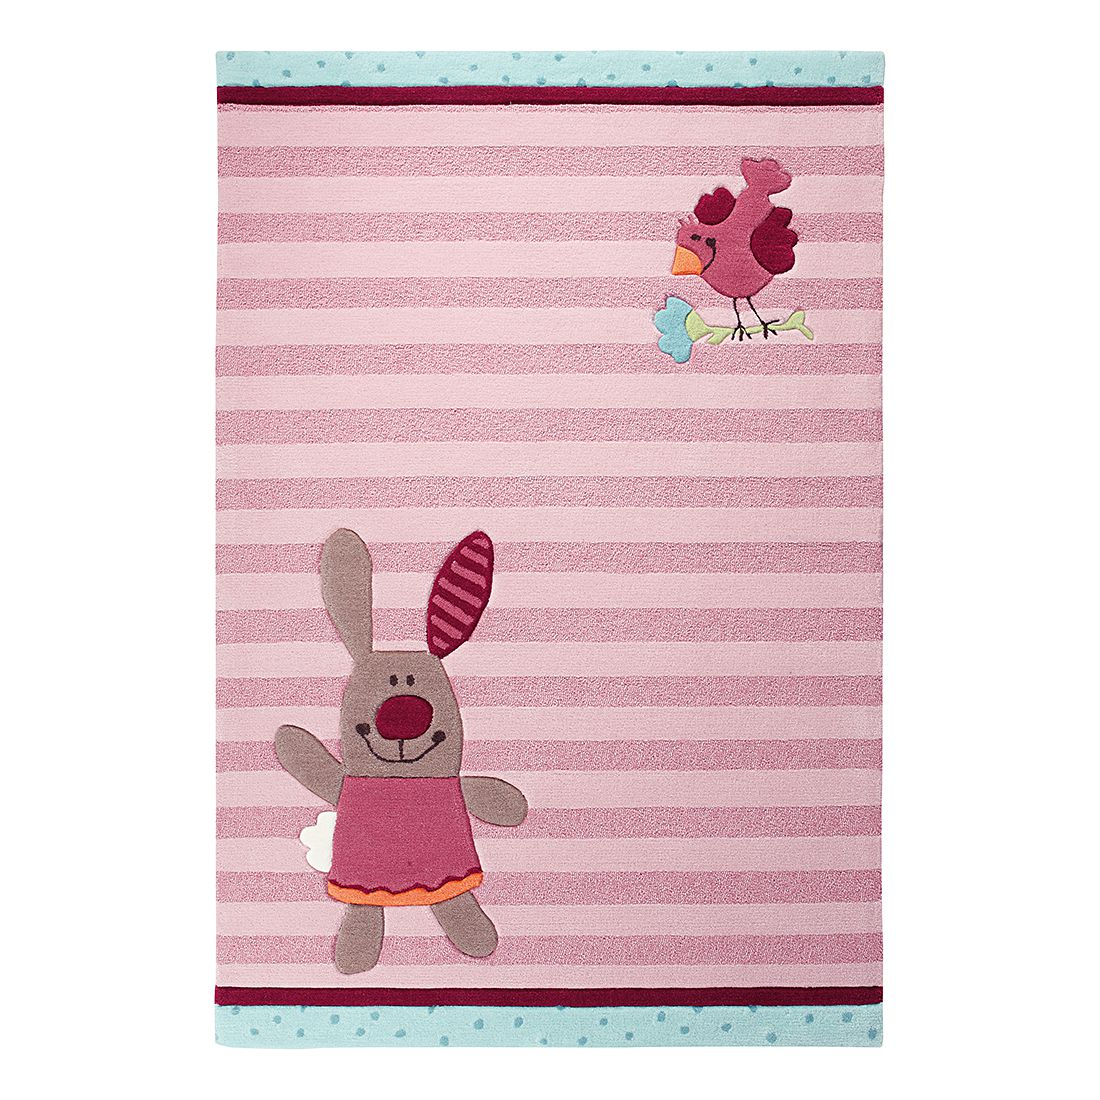 Teppich Sigikid 3 Happy Friends Stripes Big Size - Pink - 170 x 240 cm, Sigikid